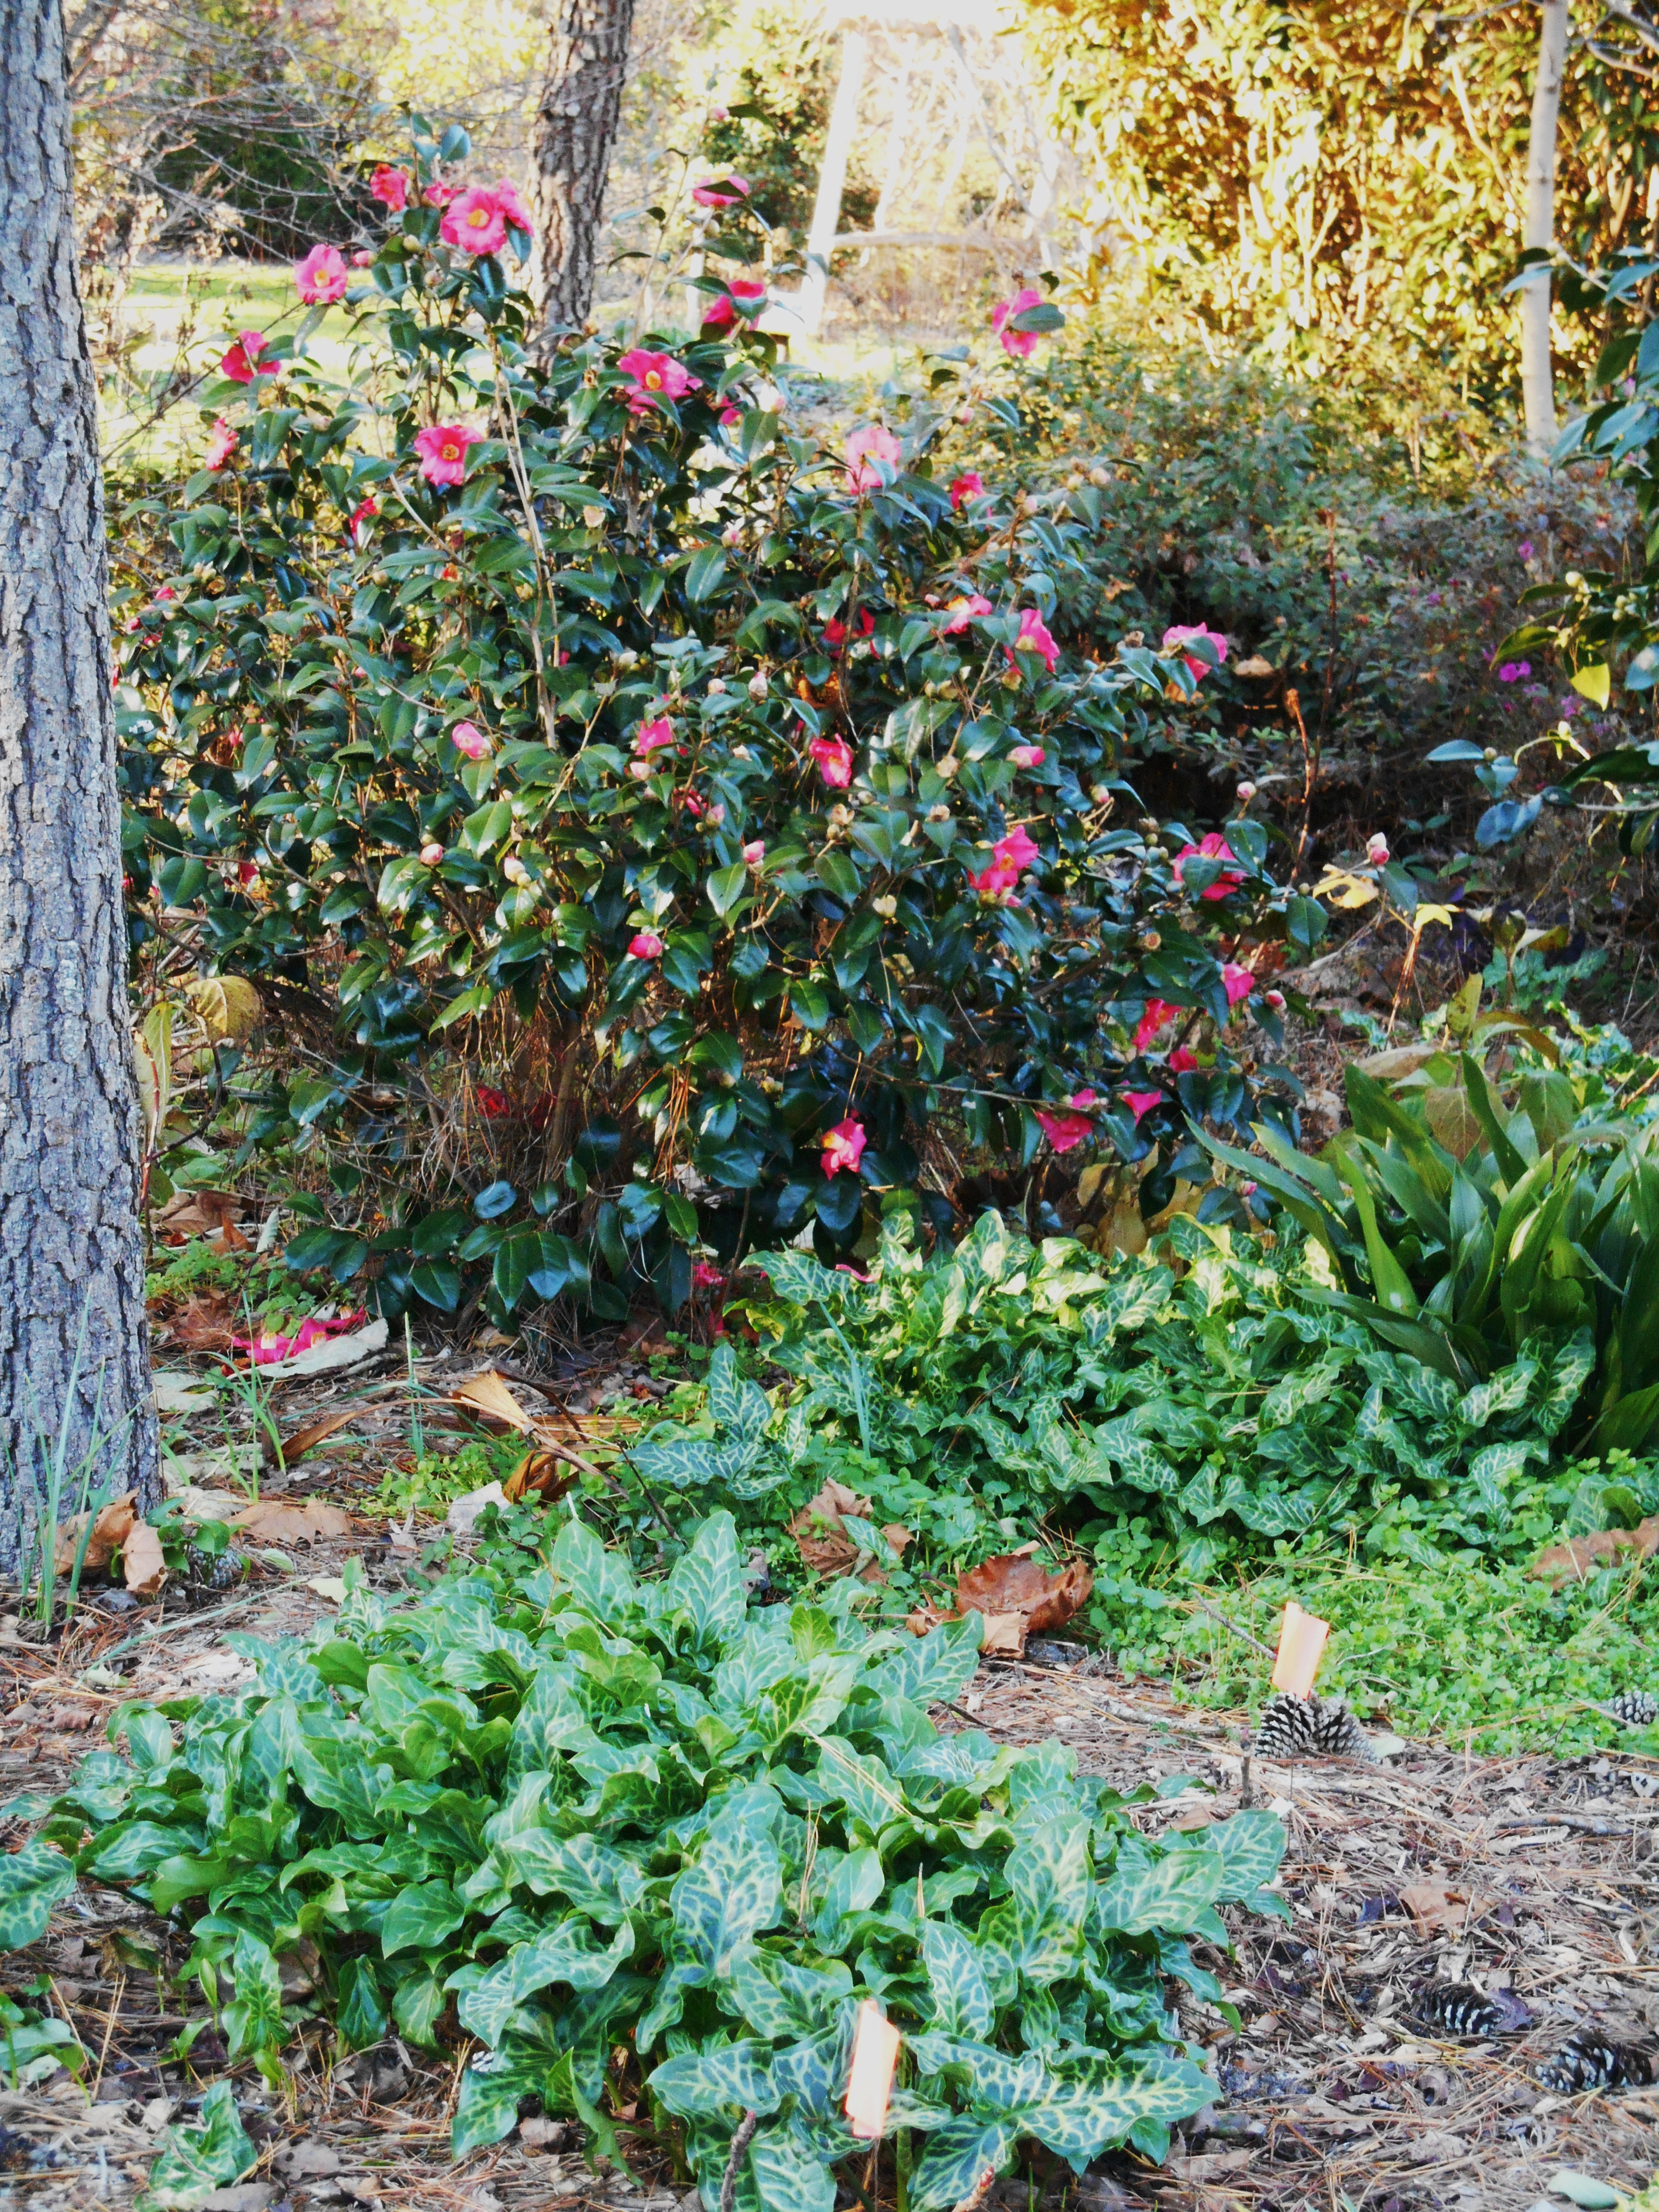 Brent and Becky's display garden features many blooming shrubs, including this lovely Camelia. The Heath's call Arum and 'shoes and socks' plant because it works so well around shrubs.